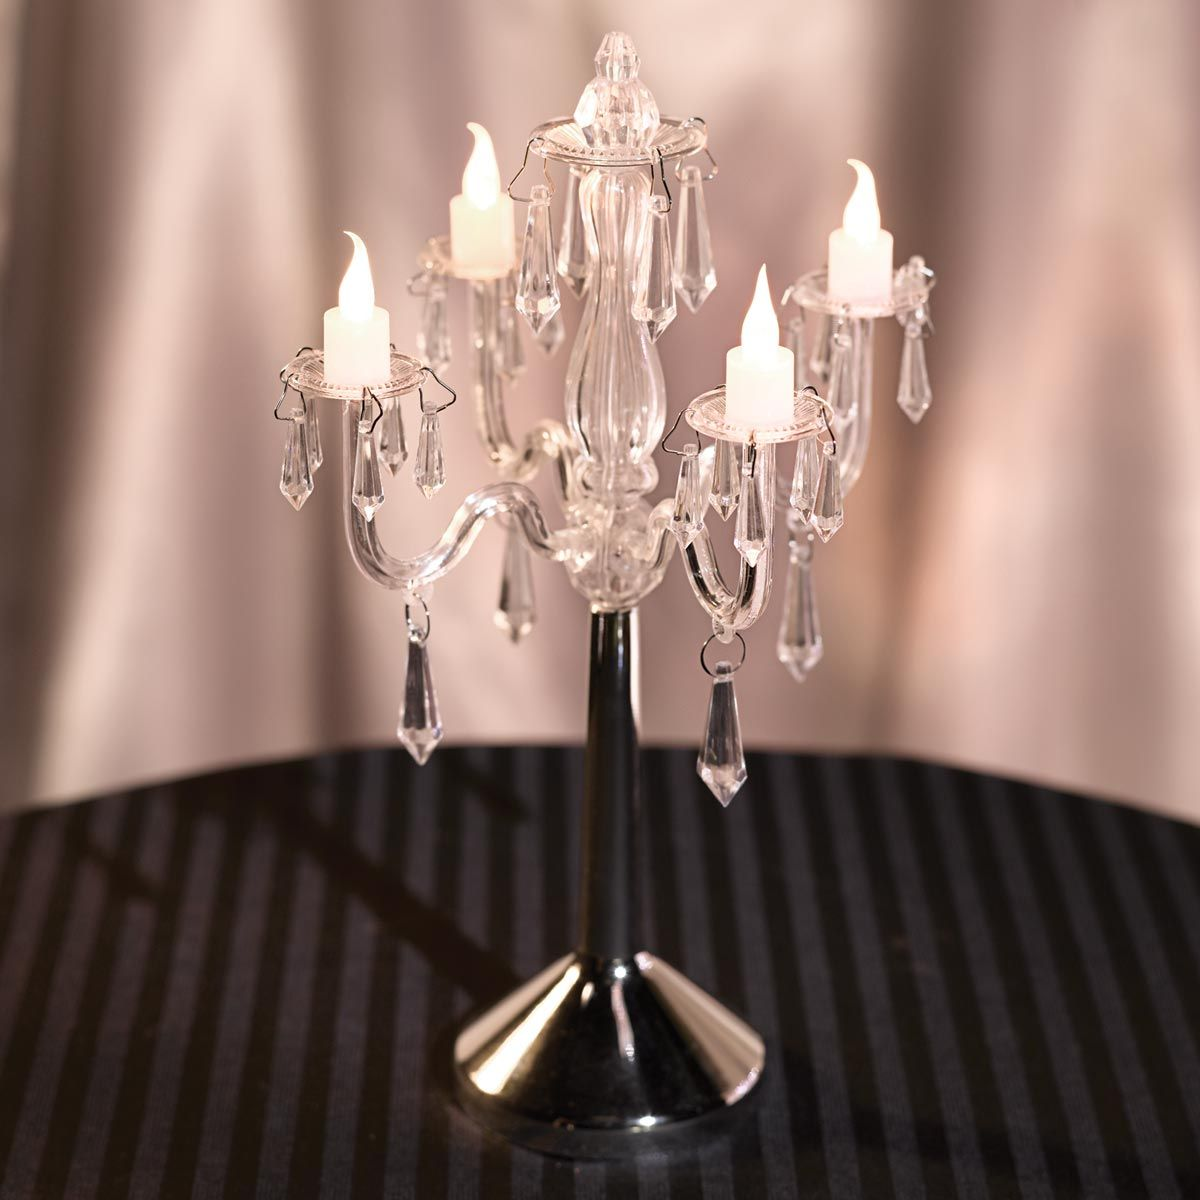 Pin by paula beloved on diy redecorating pinterest chandelier bring the fancy look of a candelabra to your prom tables with this exquisite crystal chandelier centerpiece aloadofball Images